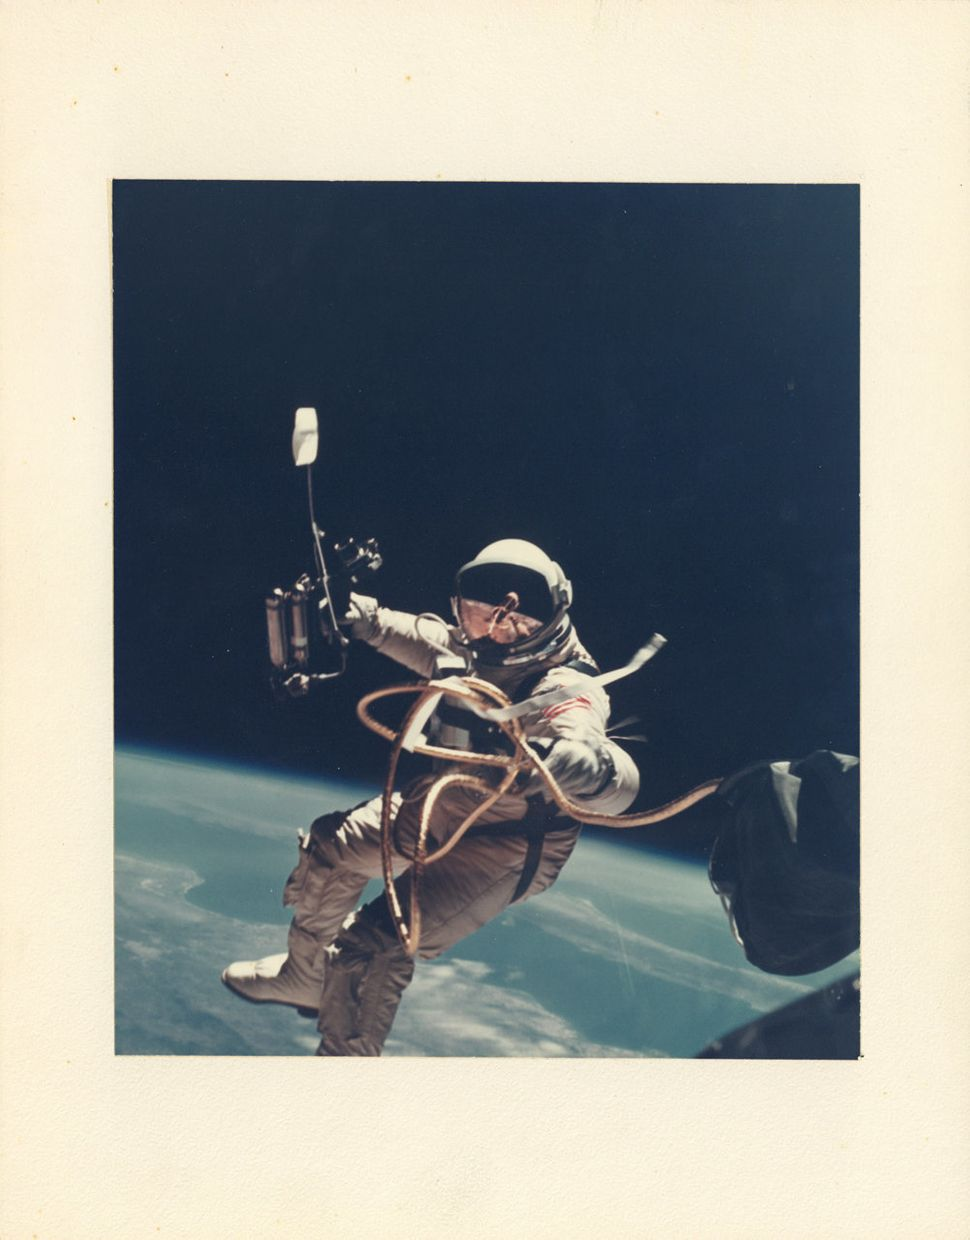 James McDivitt, First US Spacewalk, Ed White's EVA over New Mexico, Gemini 4, June 3, 1965